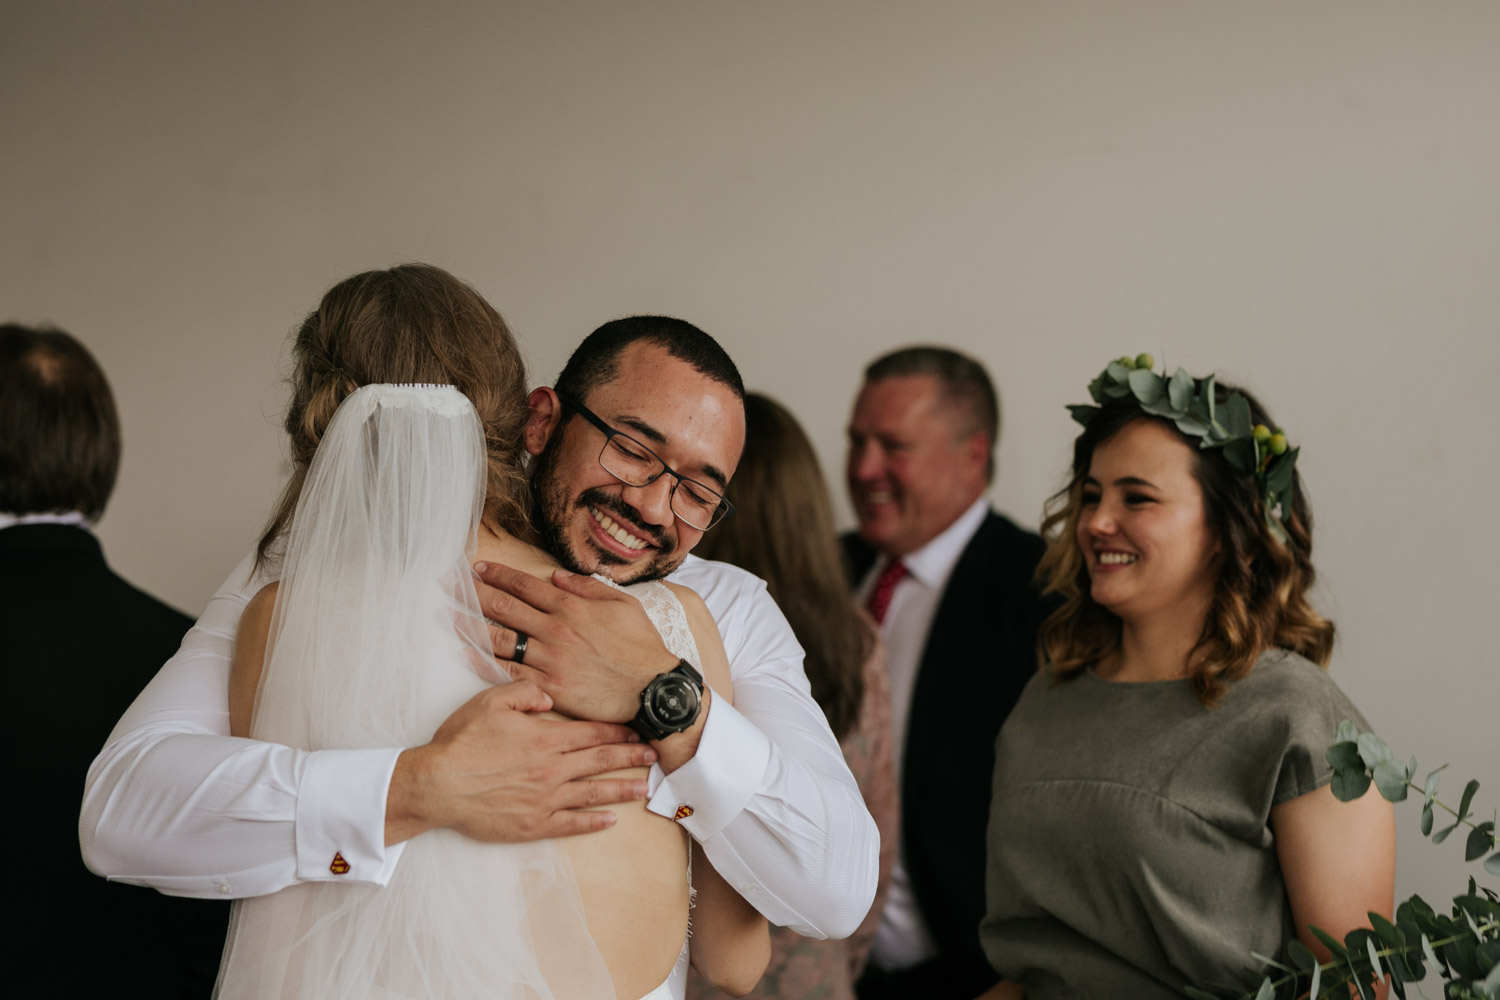 Emotional Raw Real Photo Of Bride Hugging Friends After Wedding Ceremony